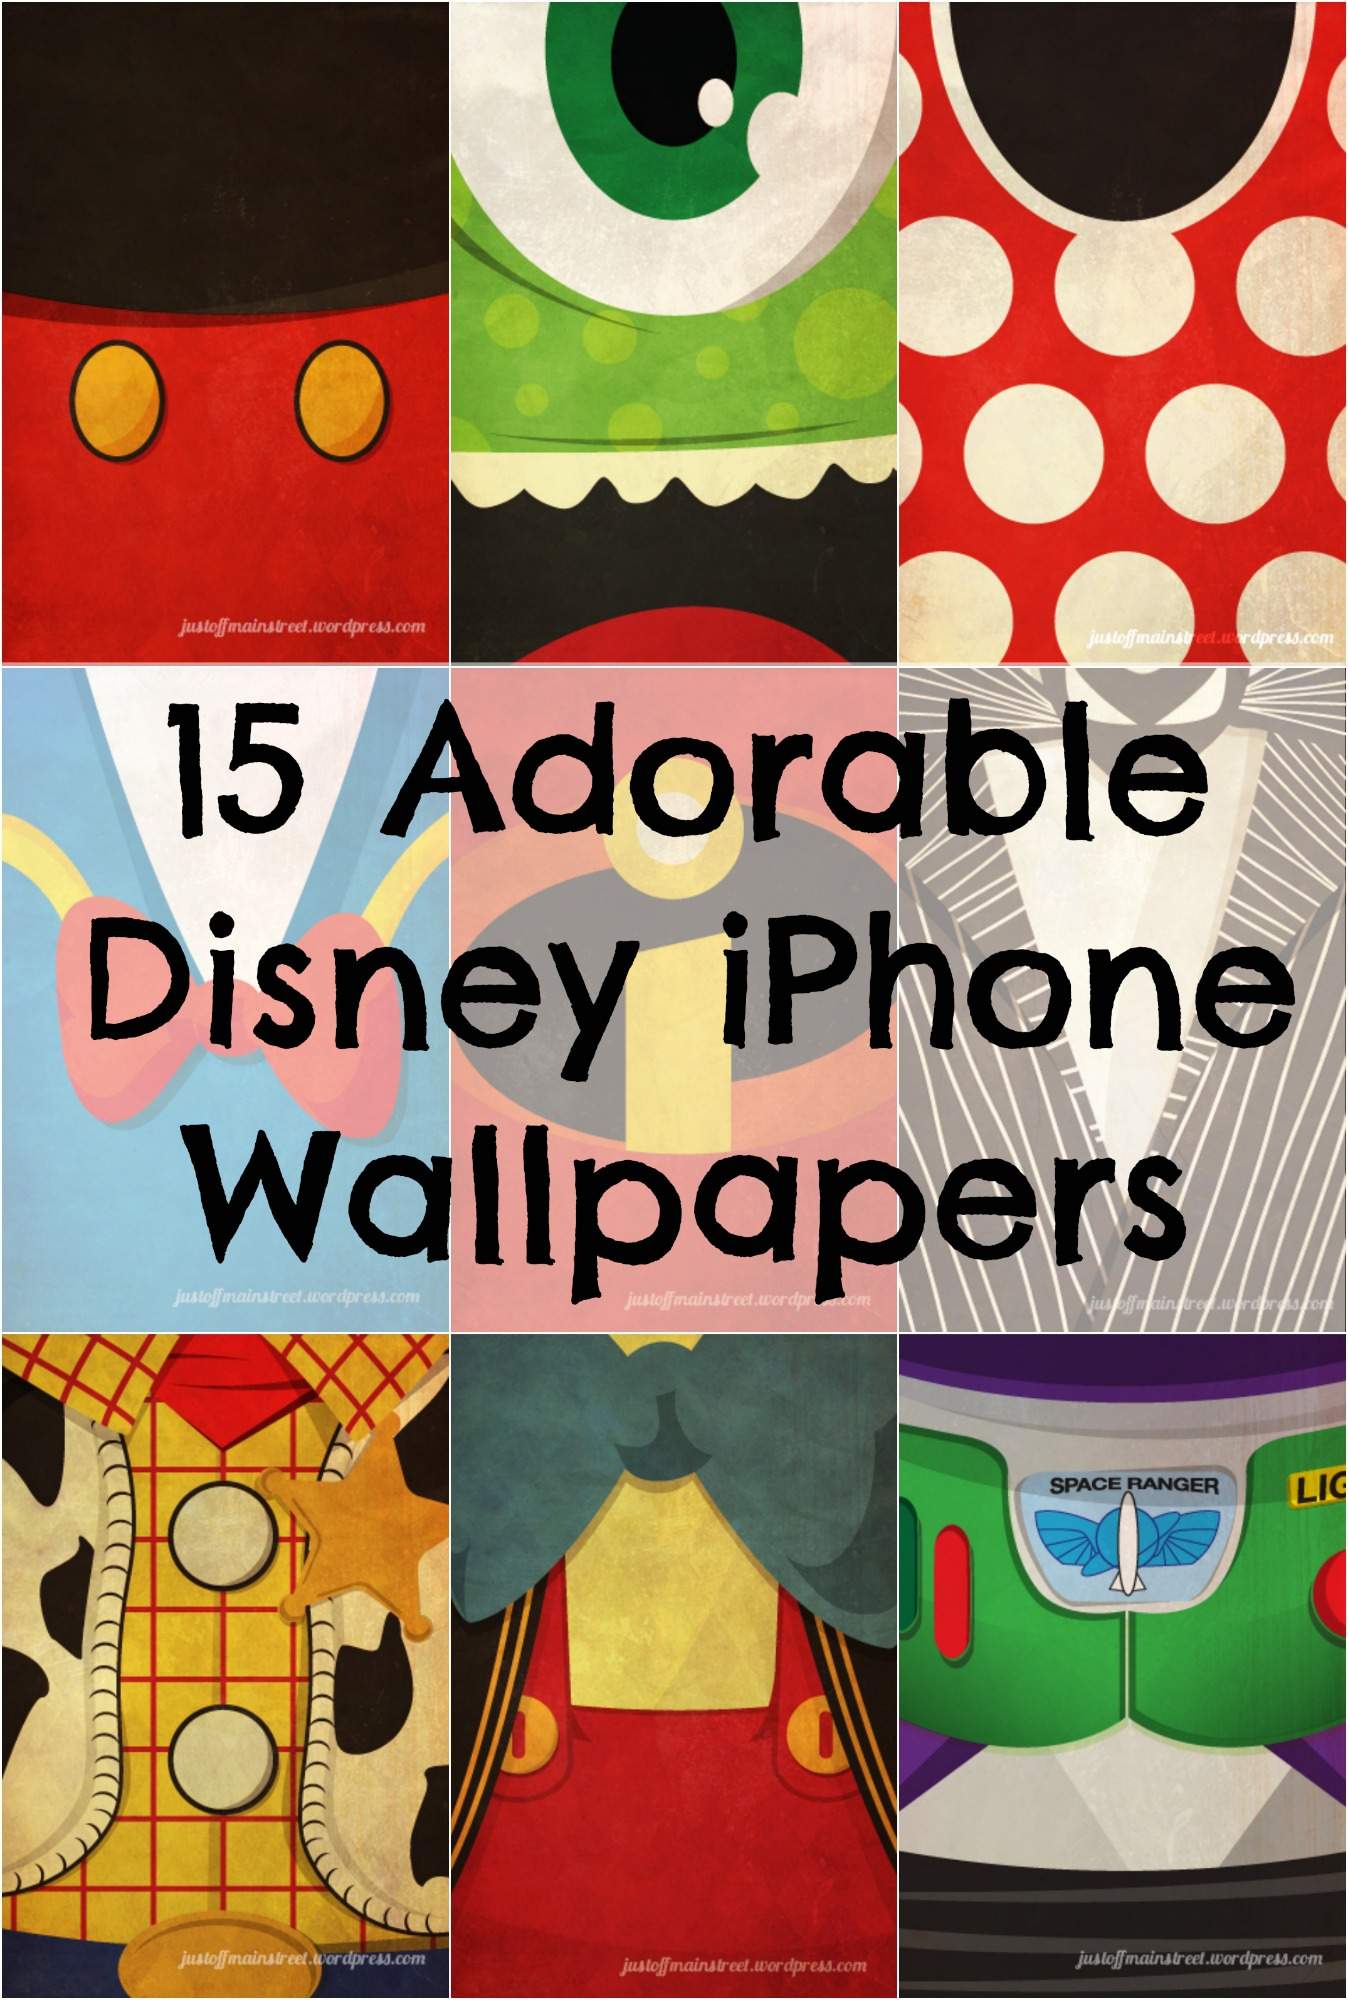 15 Iconic Disney Characters as iPhone Wallpapers Babble 1348x2000